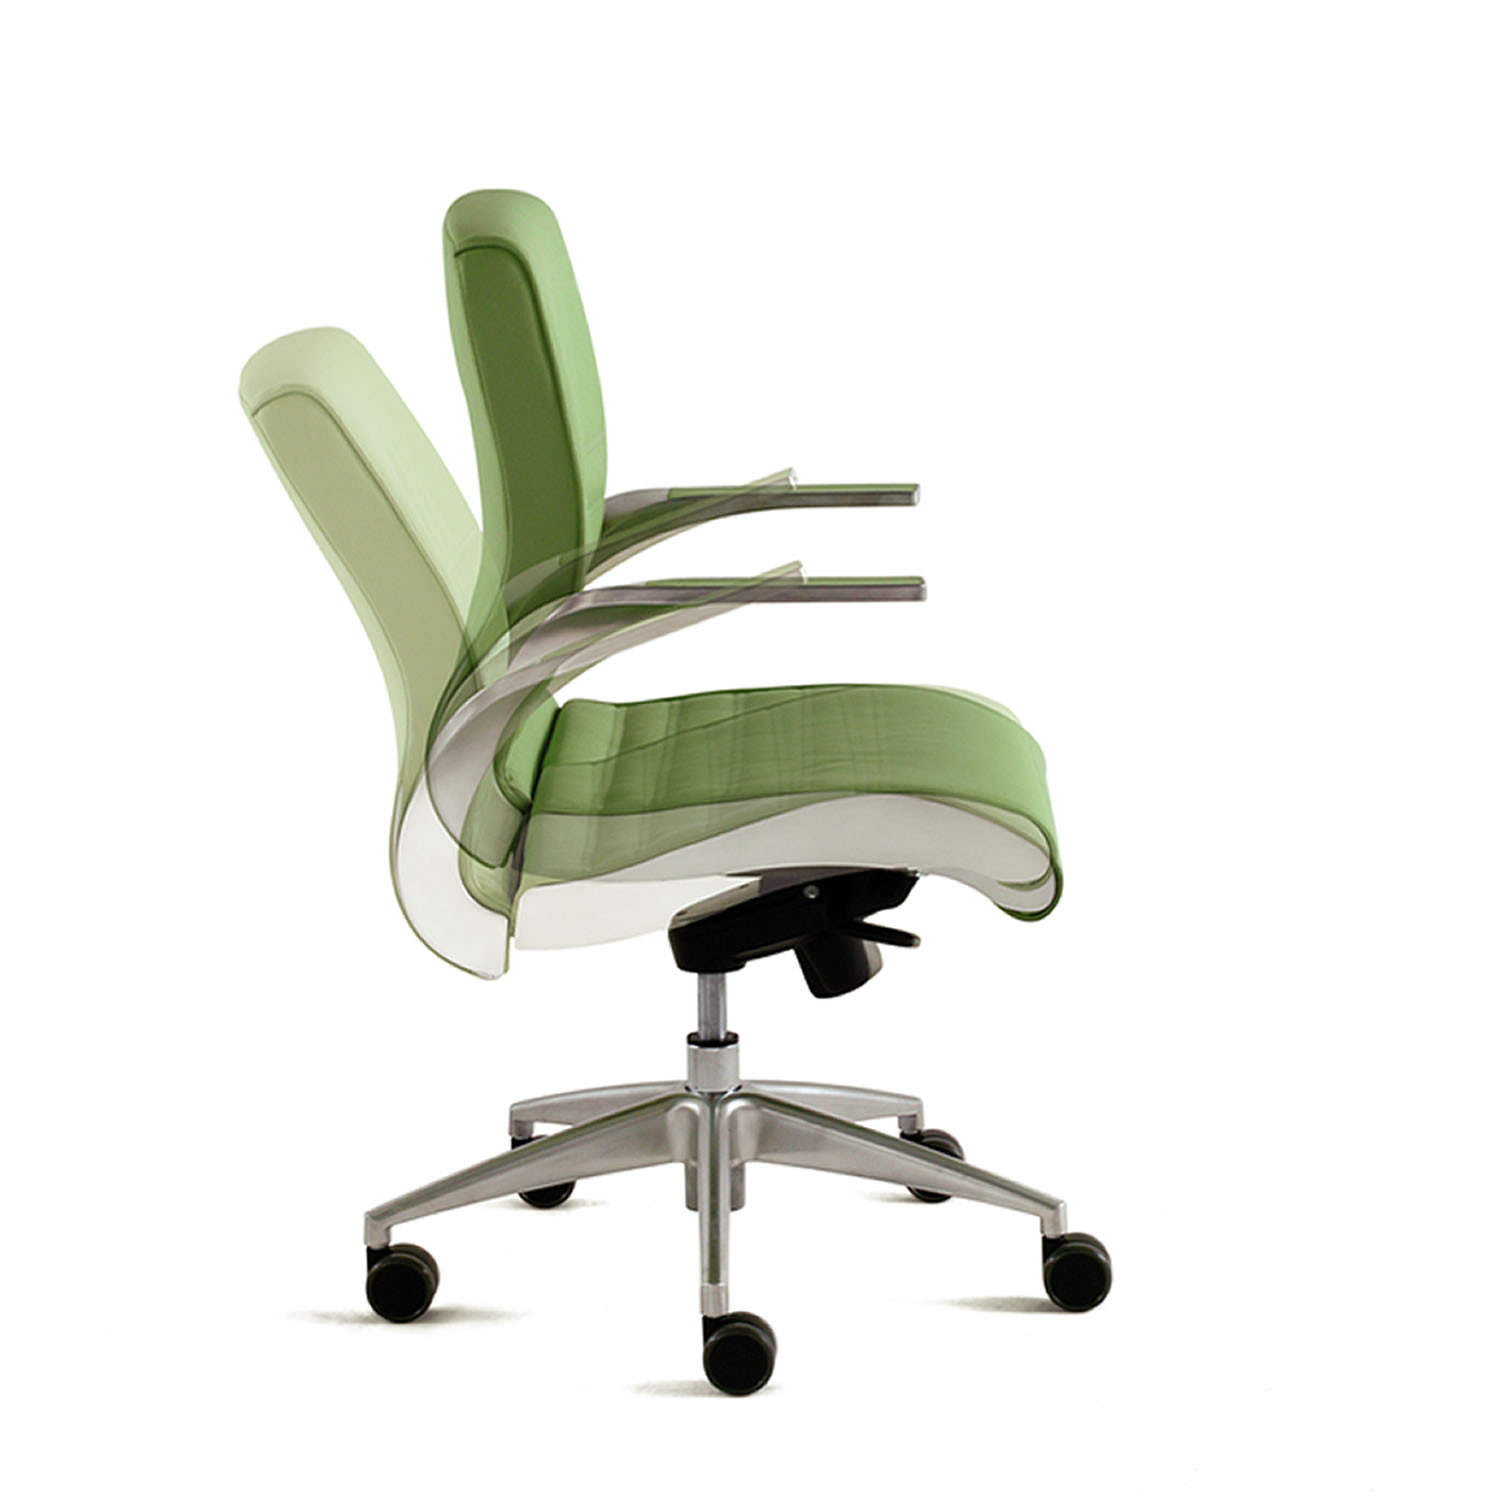 Synchrony Ergonomic Office Chair